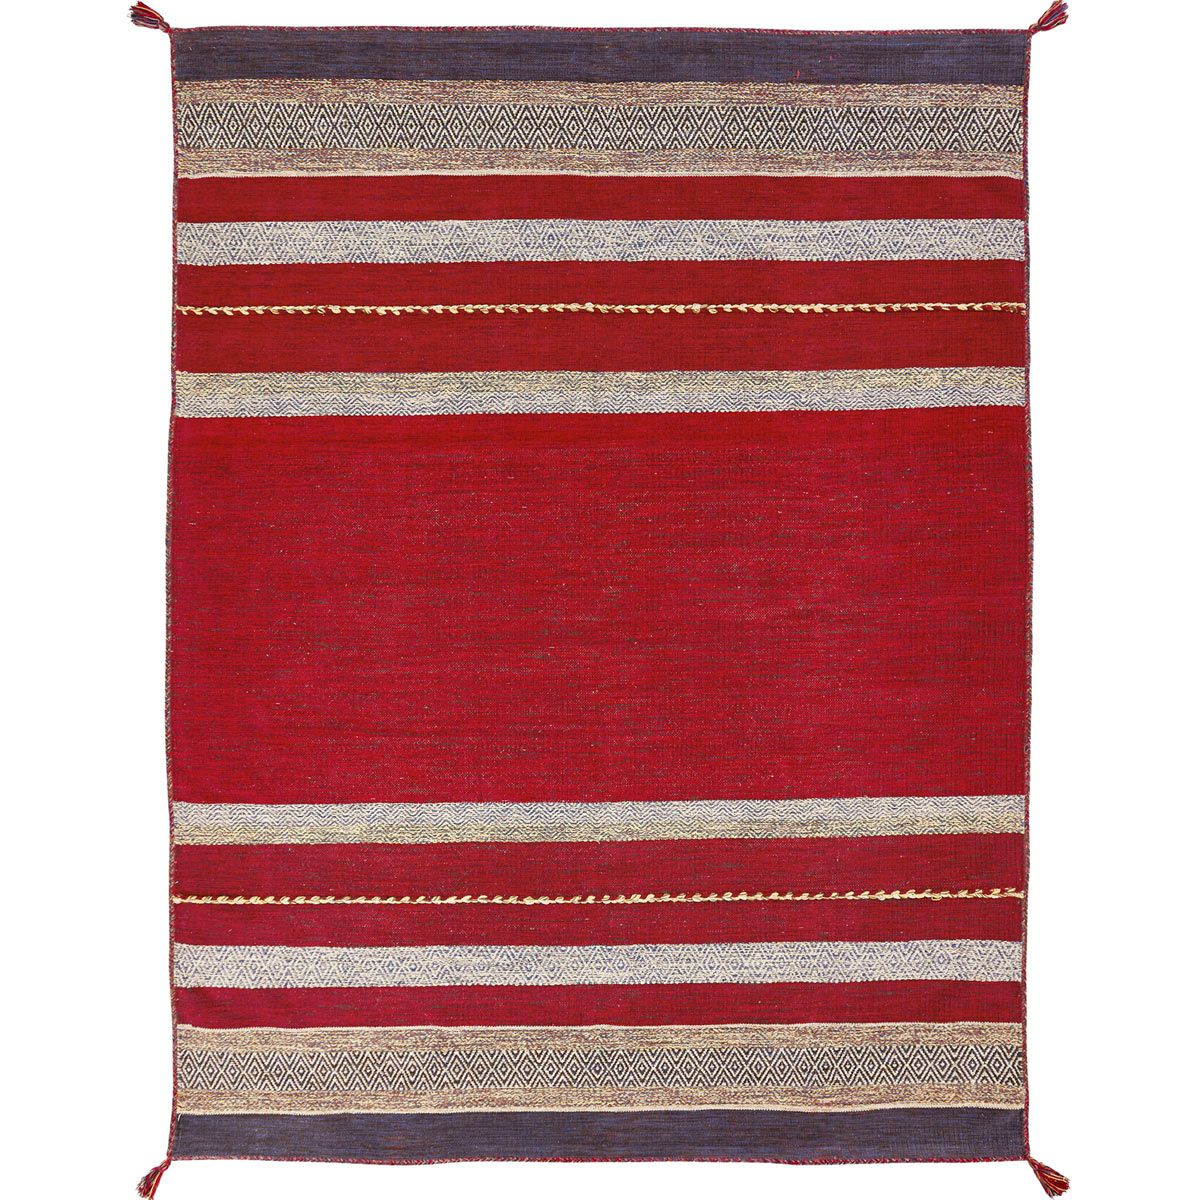 Corrales Stripes Rug - 10 x 13